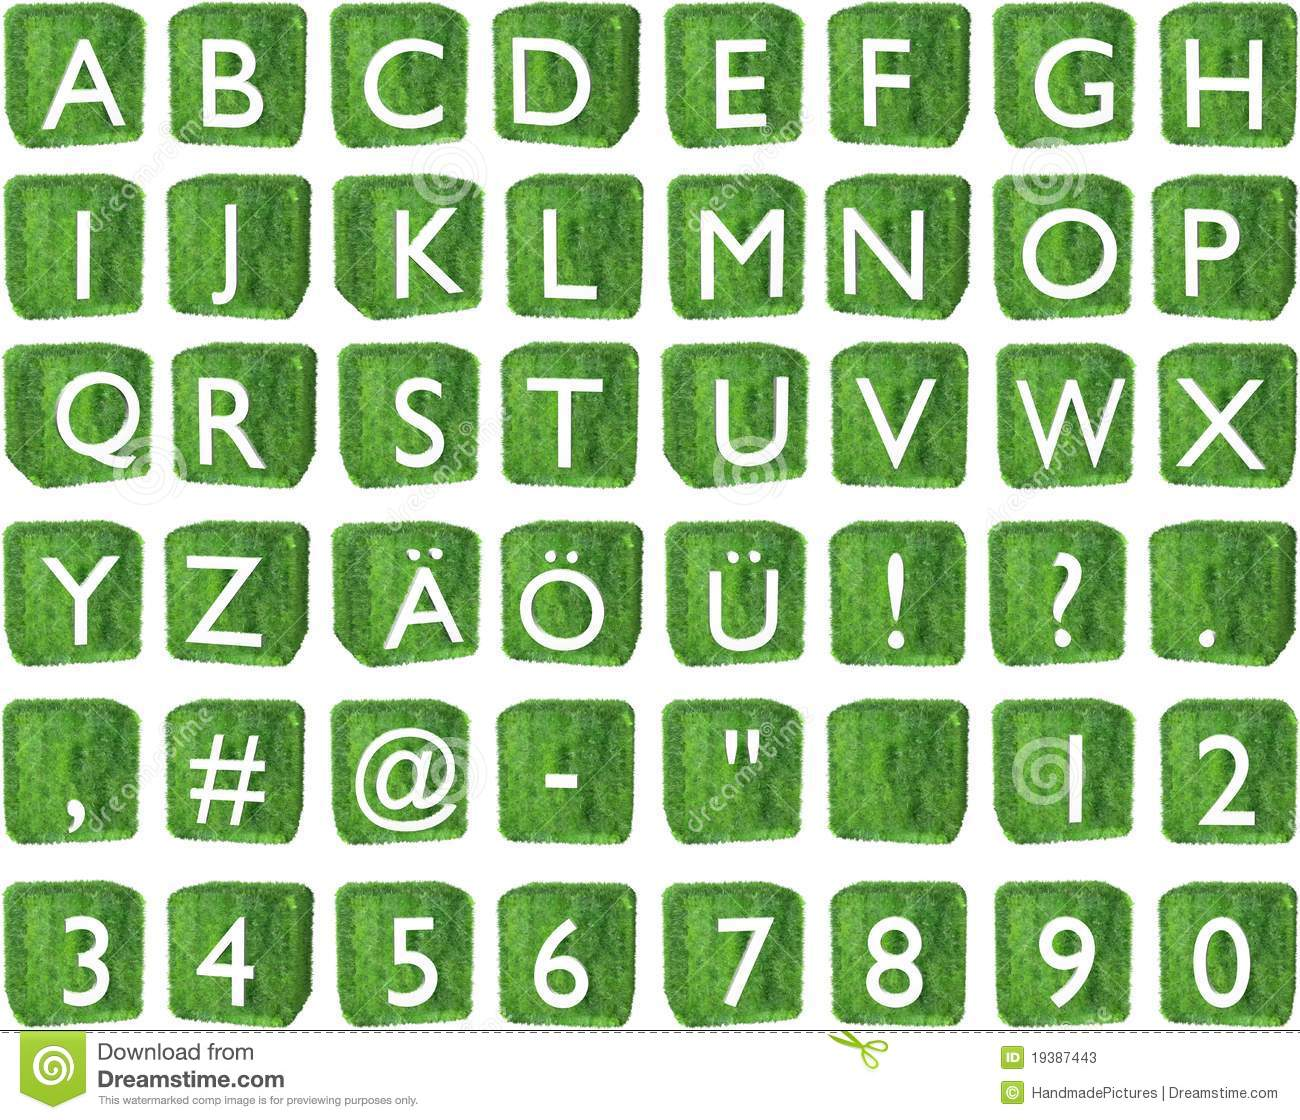 D Alphabetical Letters On Cube Capitals Stock Photos Image - States of usa in alphabetical order with capitals